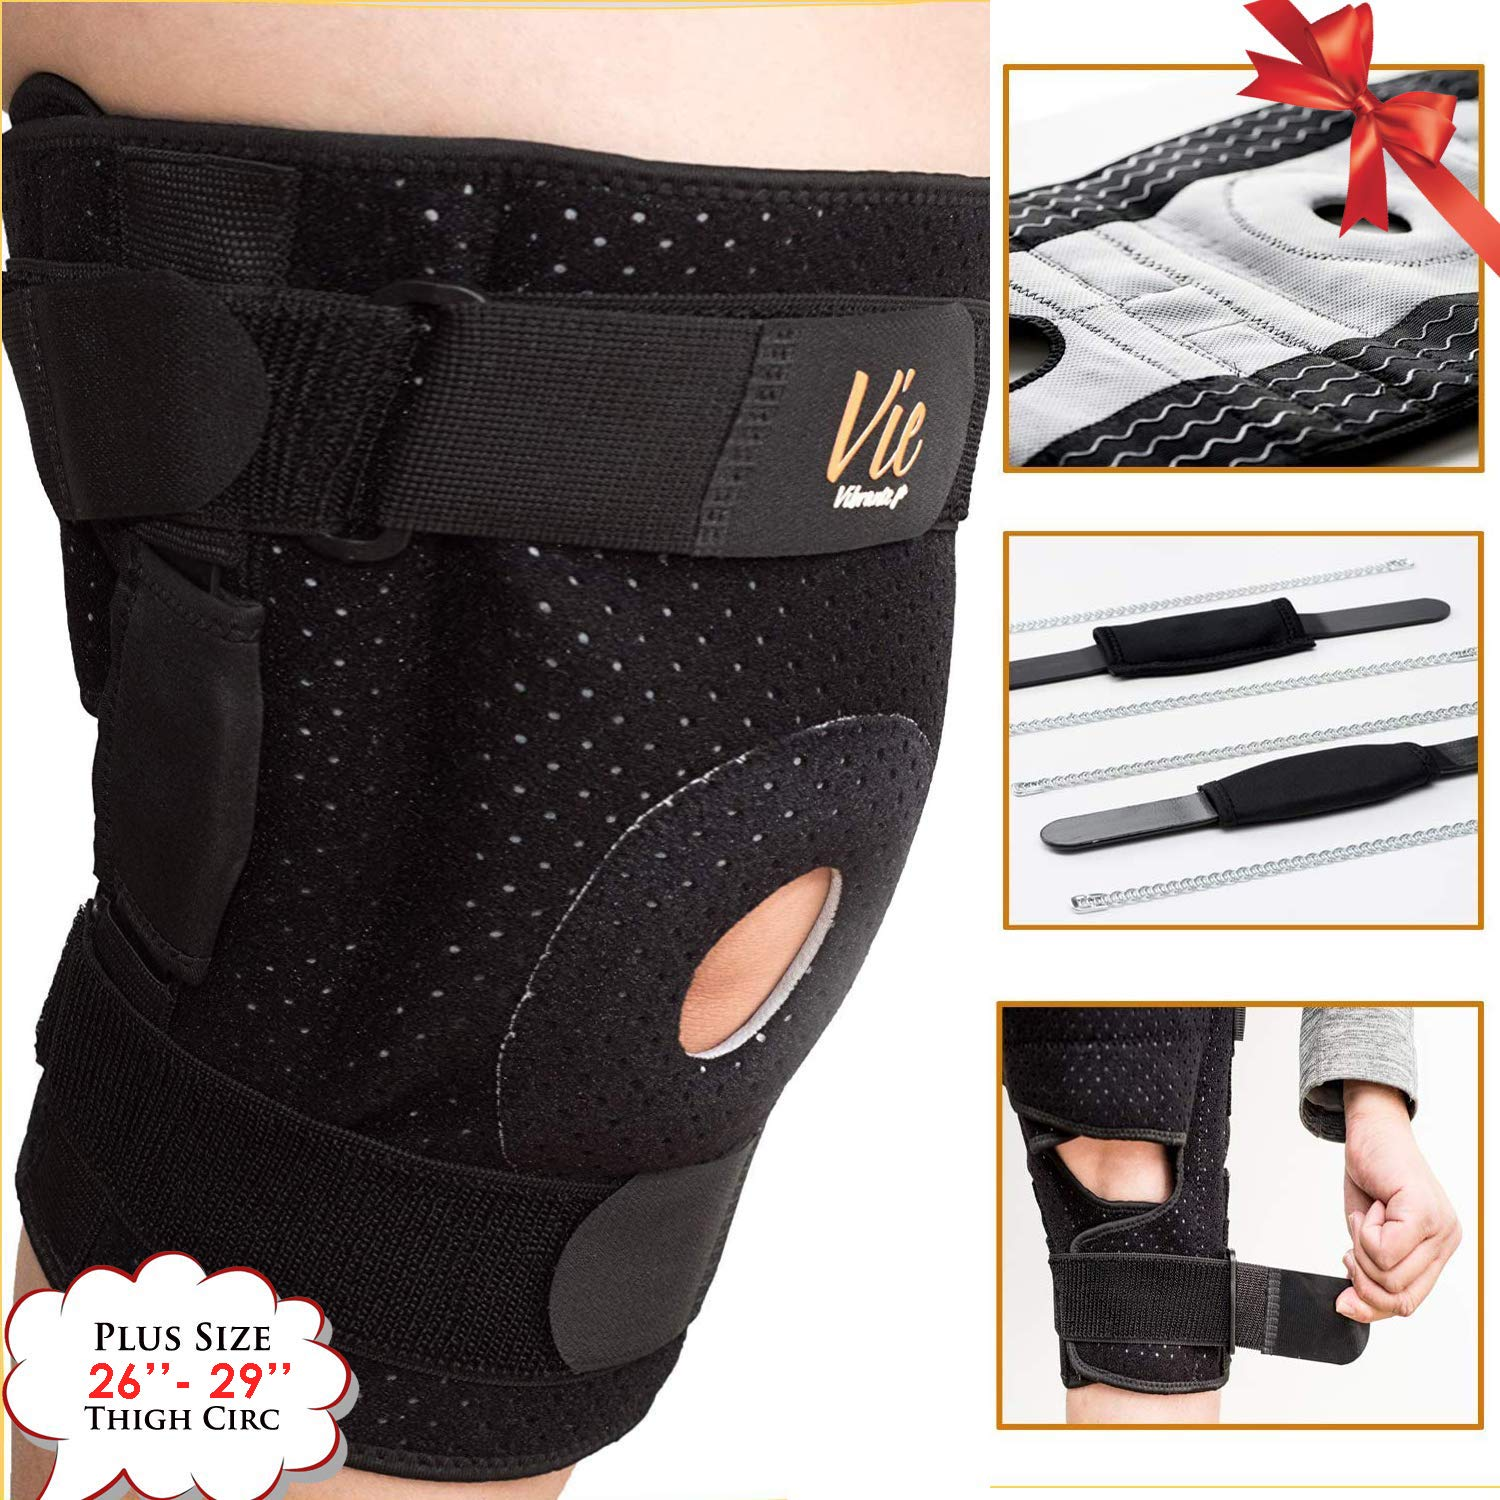 Hinged Knee Brace Plus Size - Newly Engineered Knee Braces with Enhancement on Flexibility, Extra Supportive, Non-Slip and Non Bulky - Wrap Around to fit Larger Legs for Men and Women - Vie Vibrante